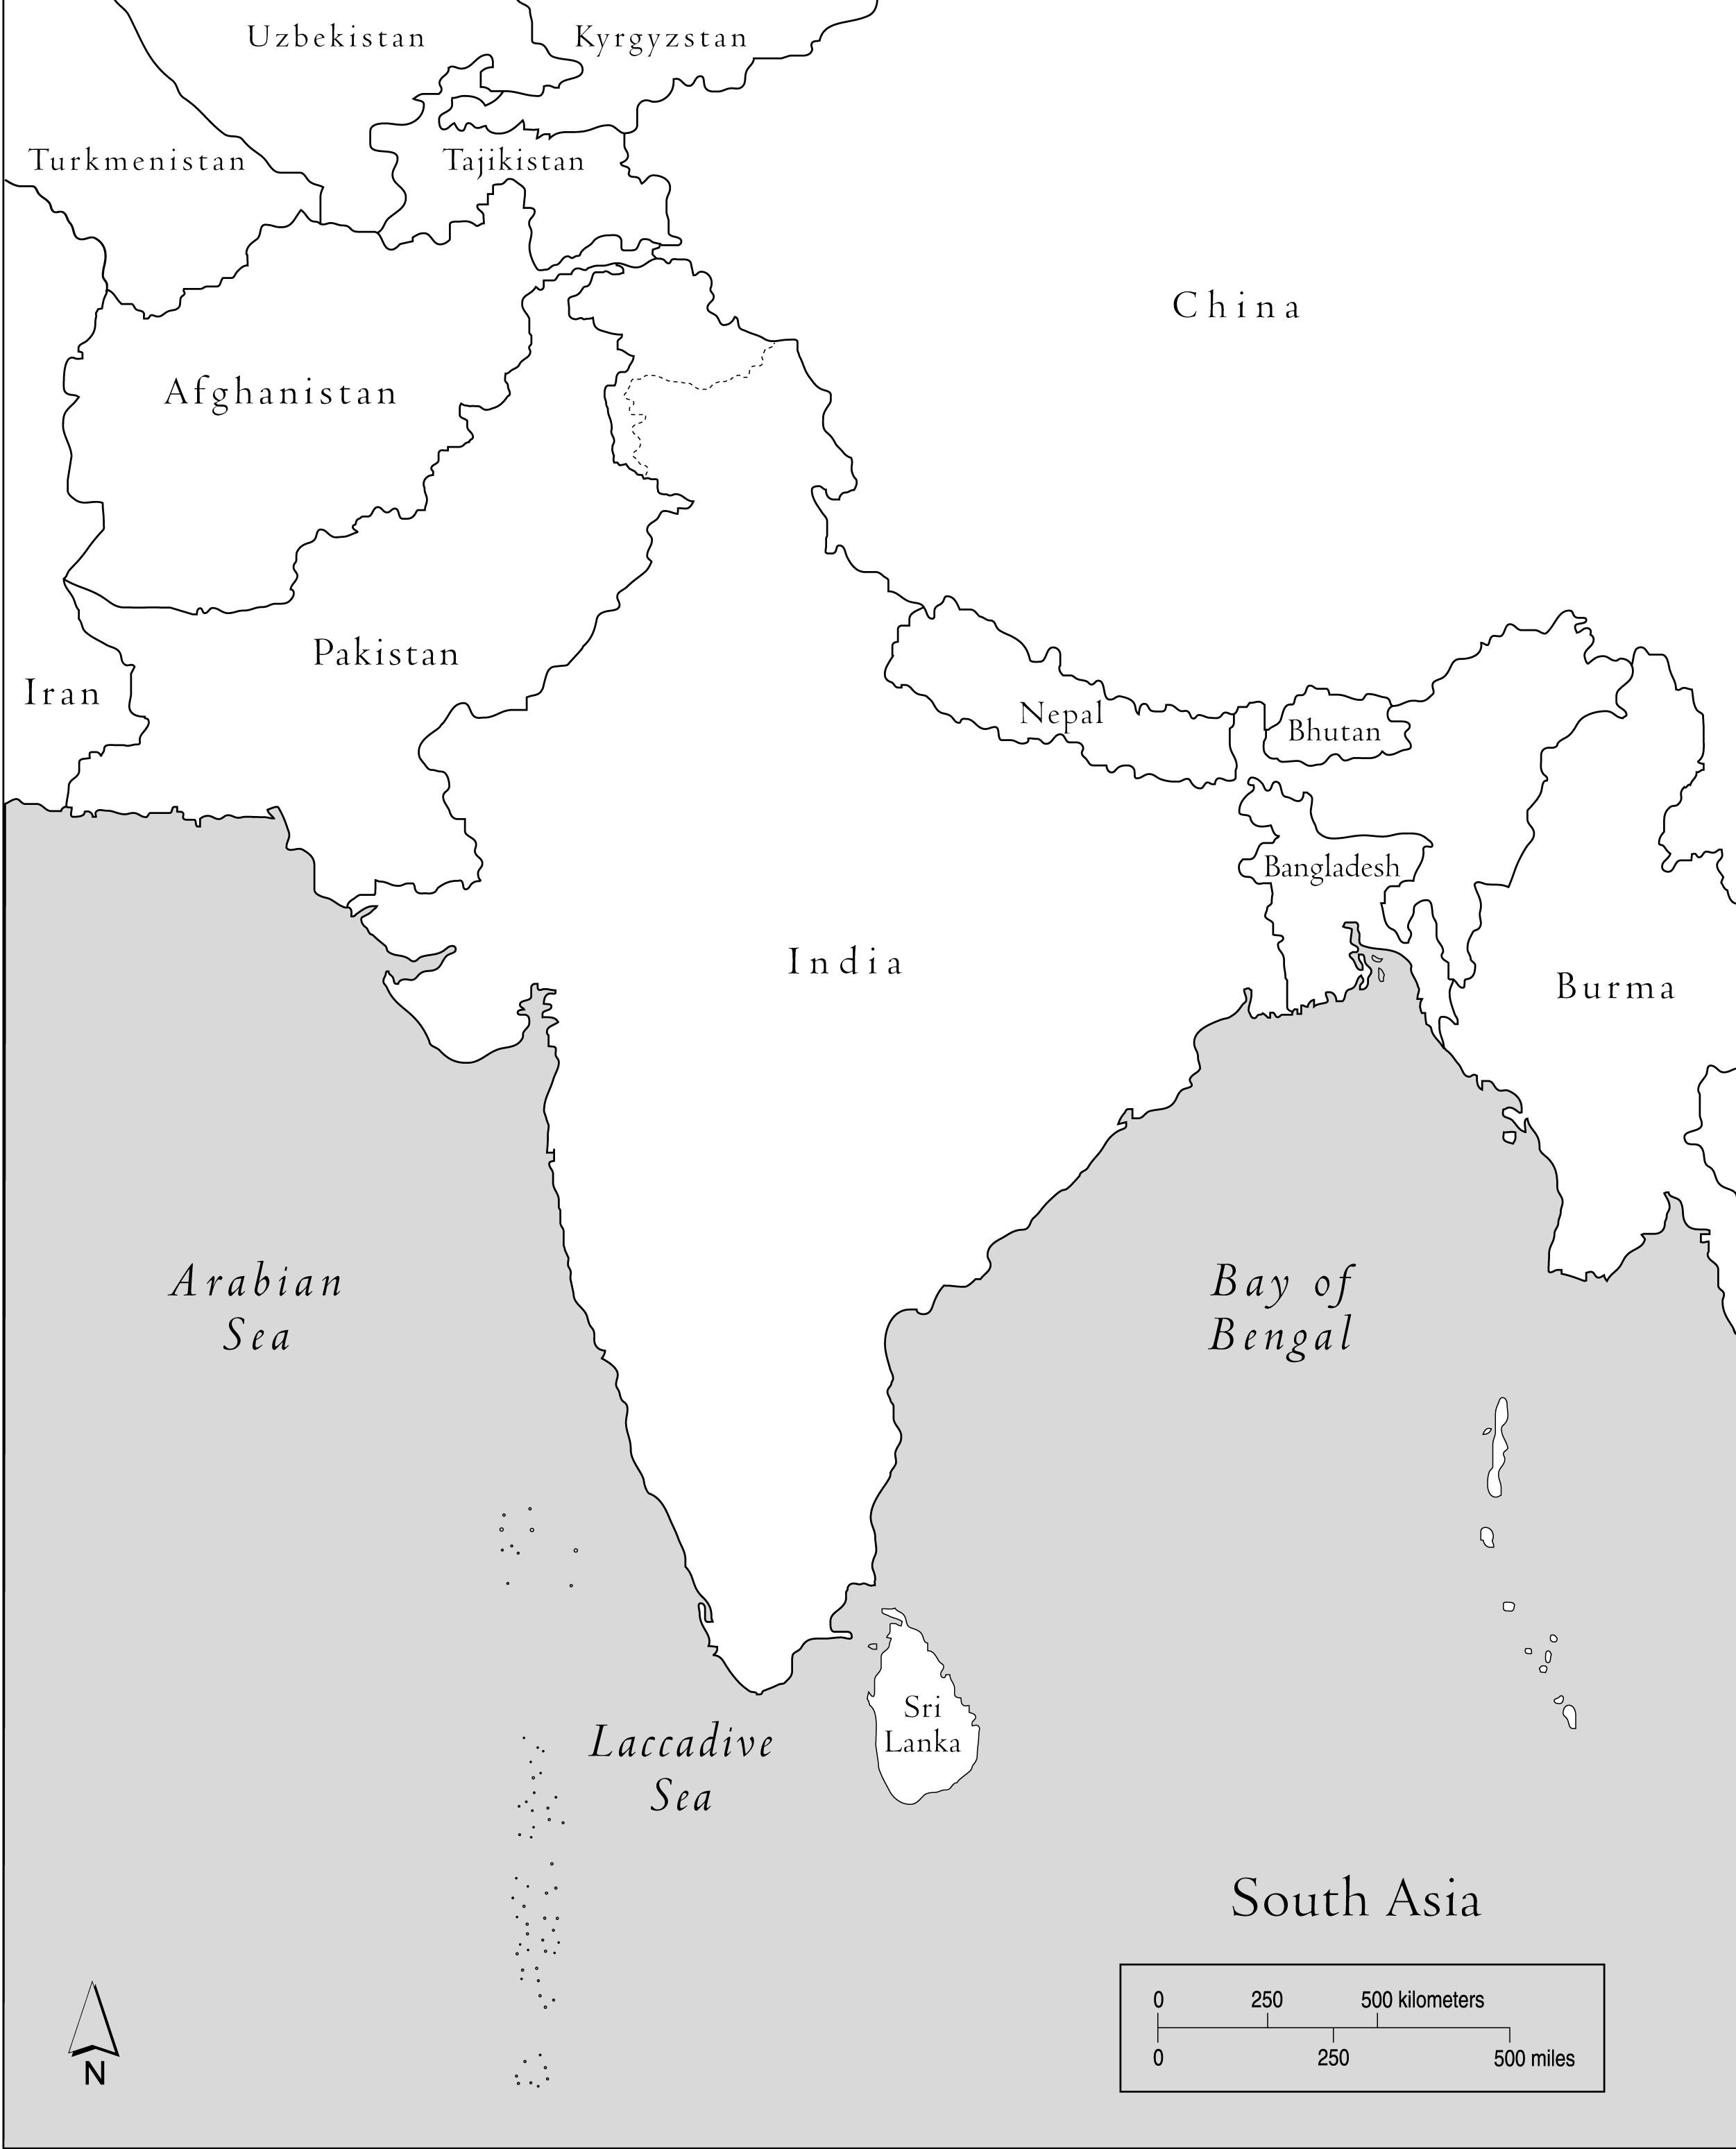 Blank South Asia Map Enthralling Asia Countries Quiz Maps Of South Asia Blank Map